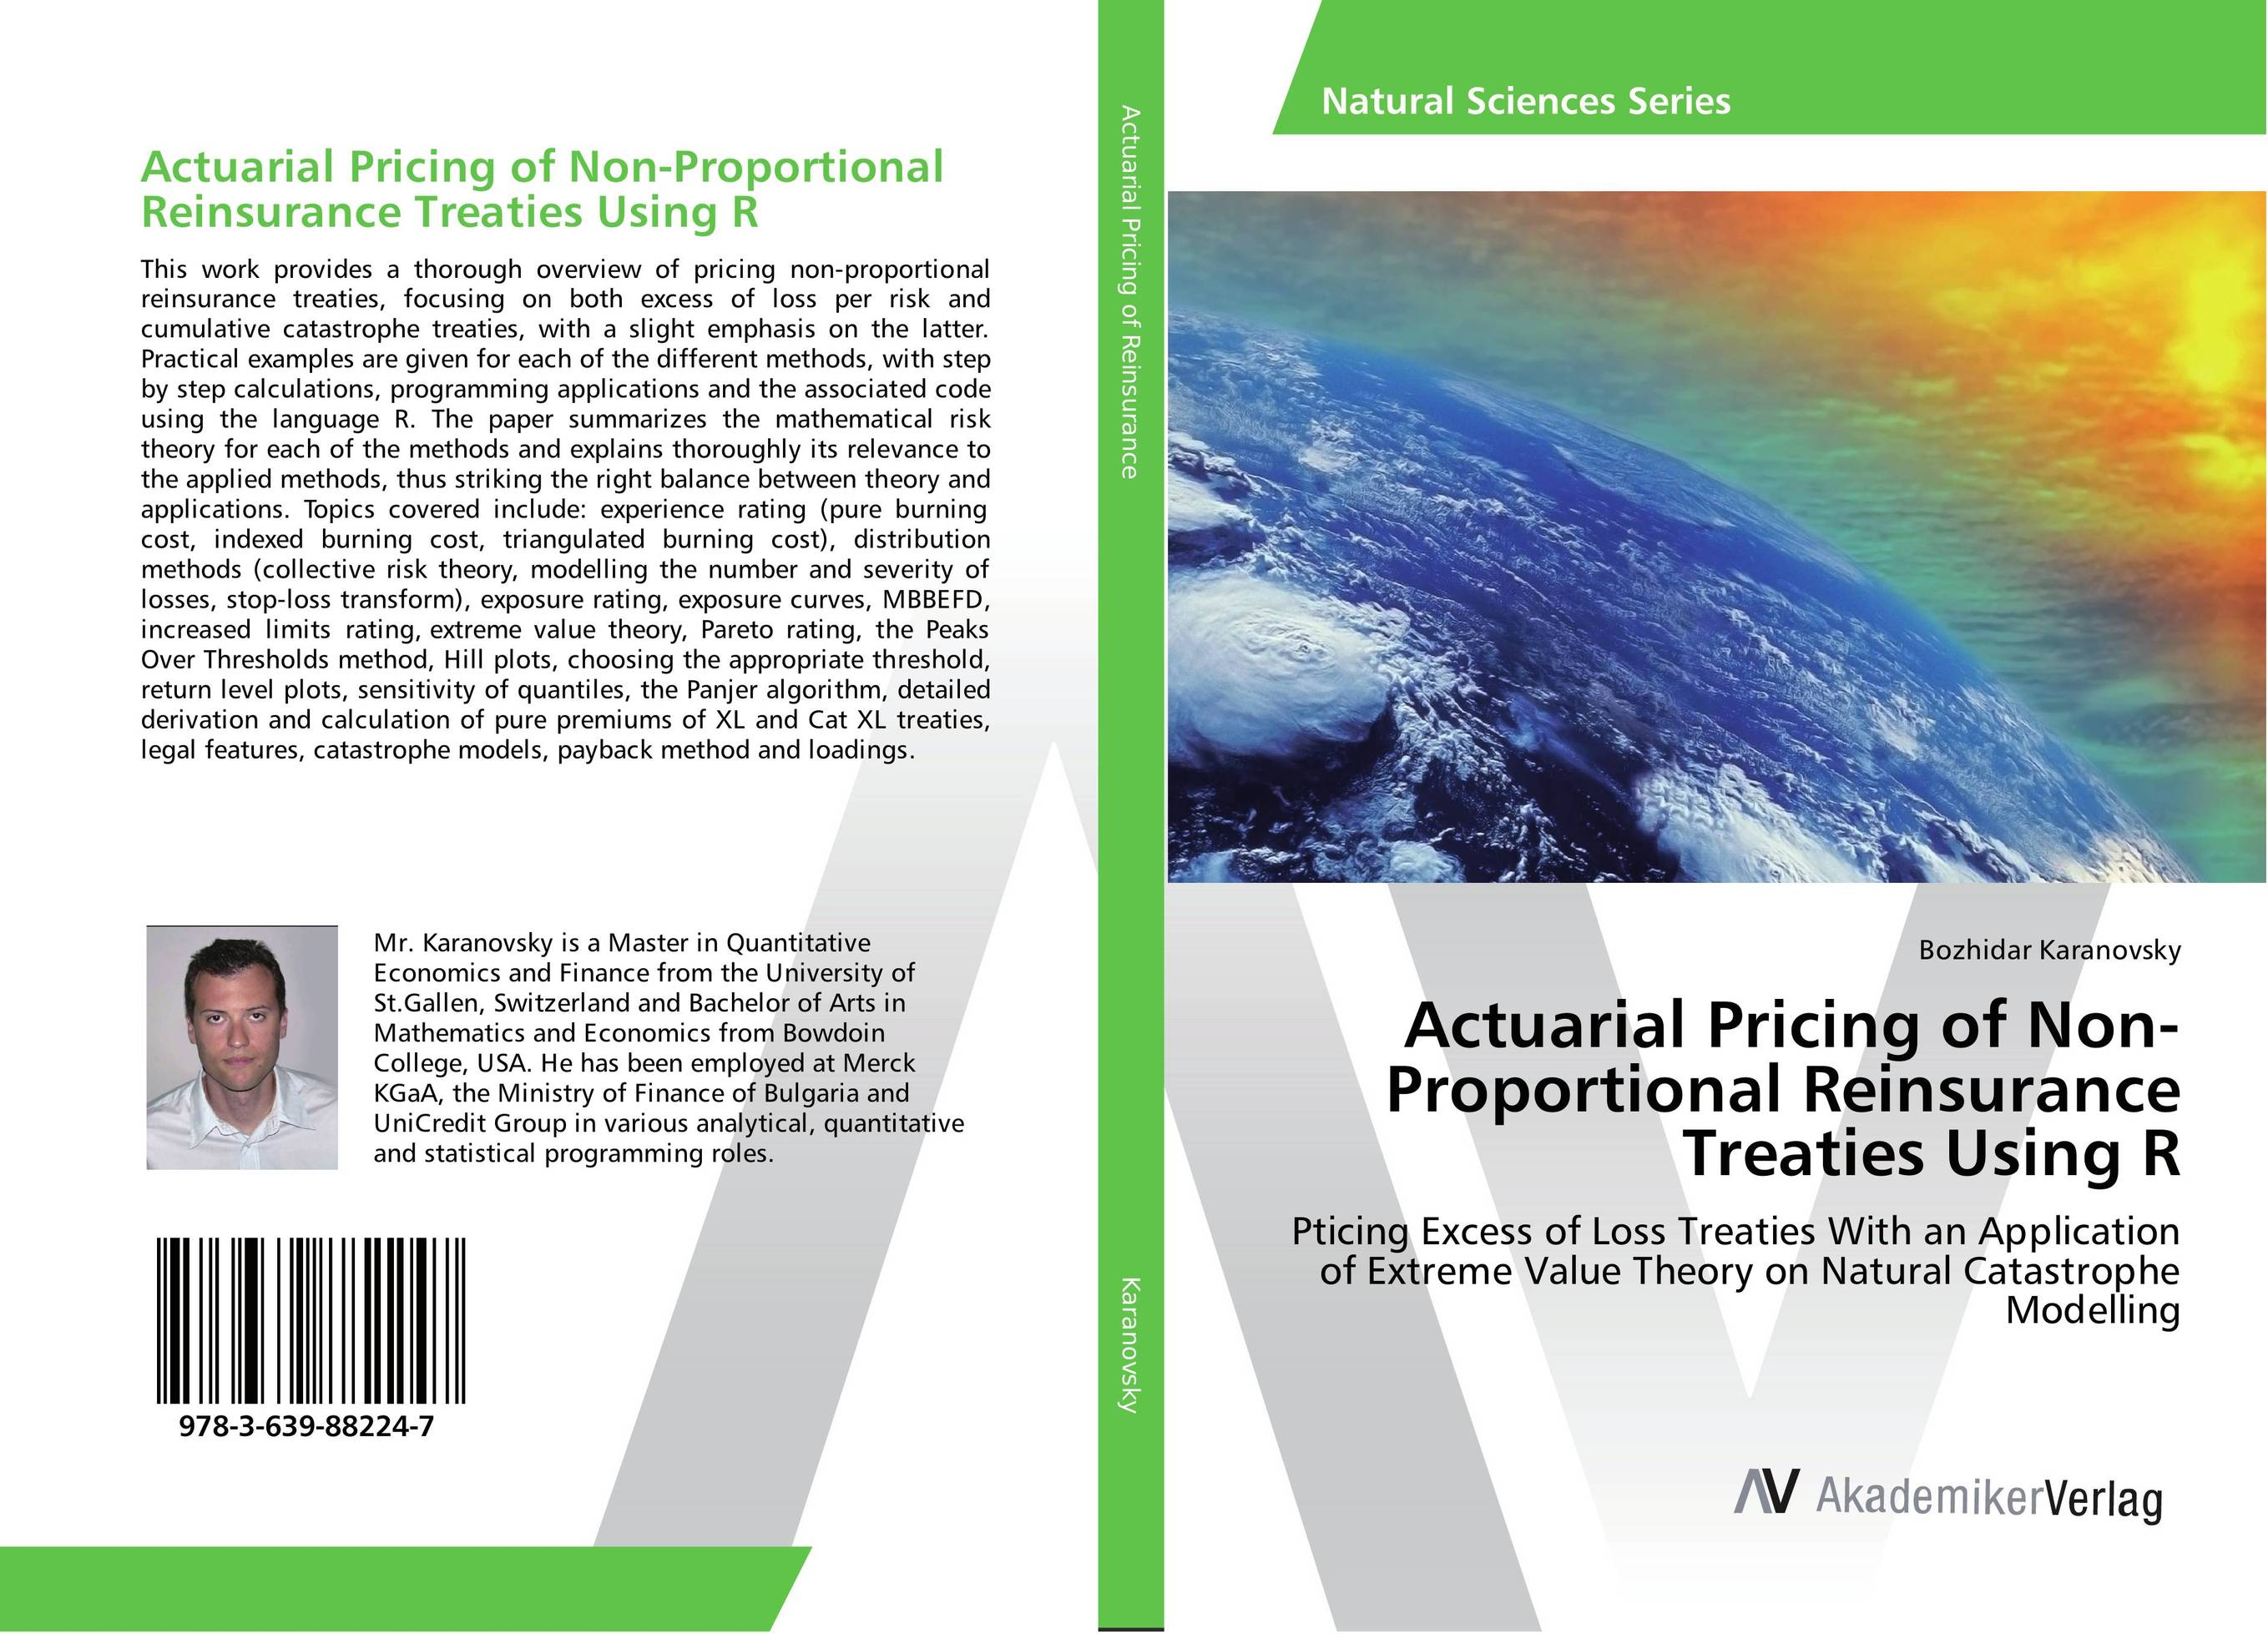 Actuarial Pricing of Non-Proportional Reinsurance Treaties Using R